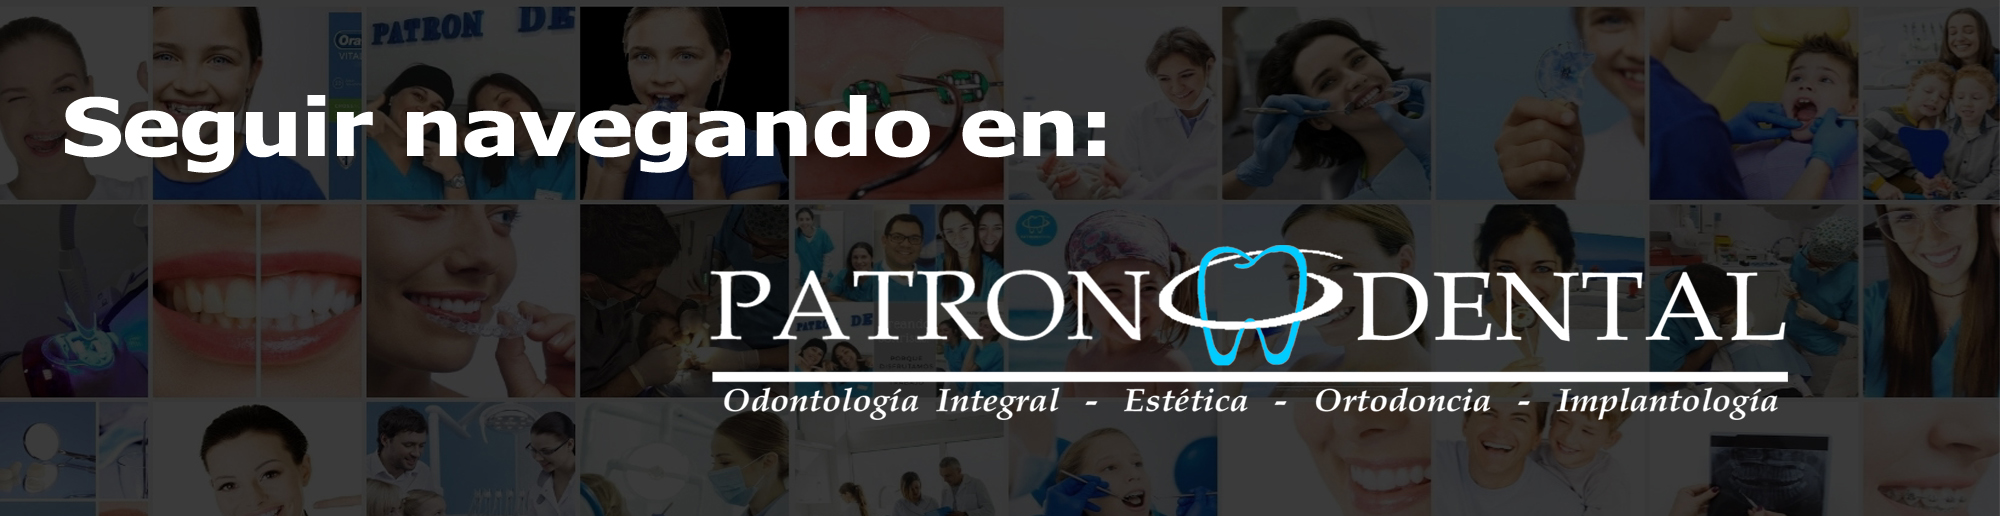 Clinica Dental Ortodoncia